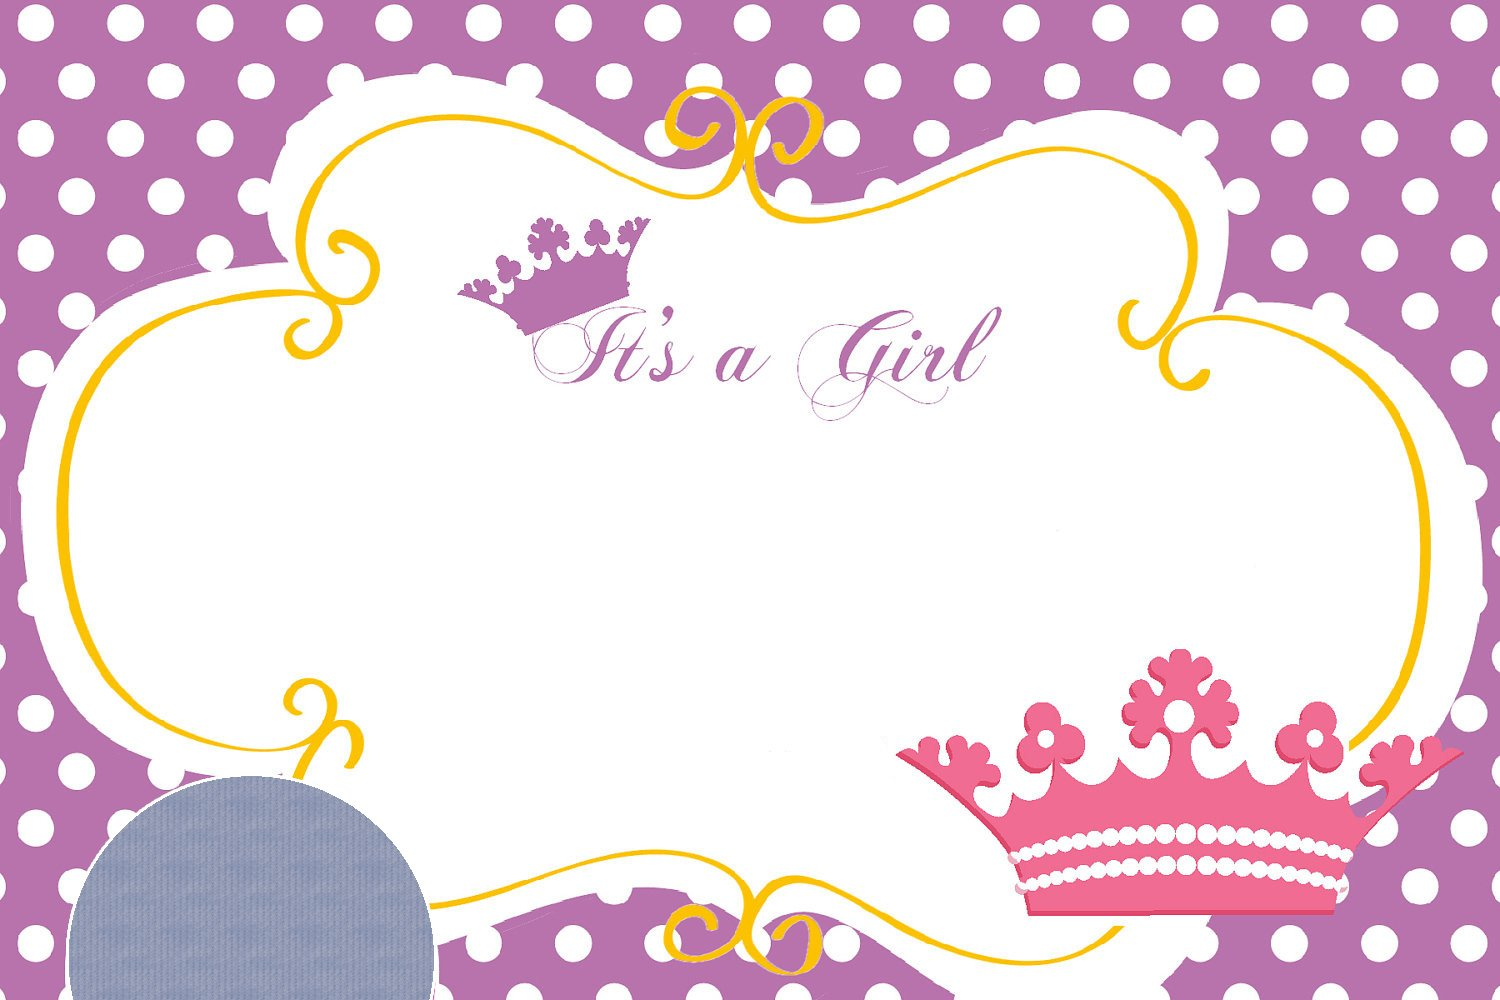 FREE-Printable-Princess-Crown-Baby-Shower-Invitation – FREE ...